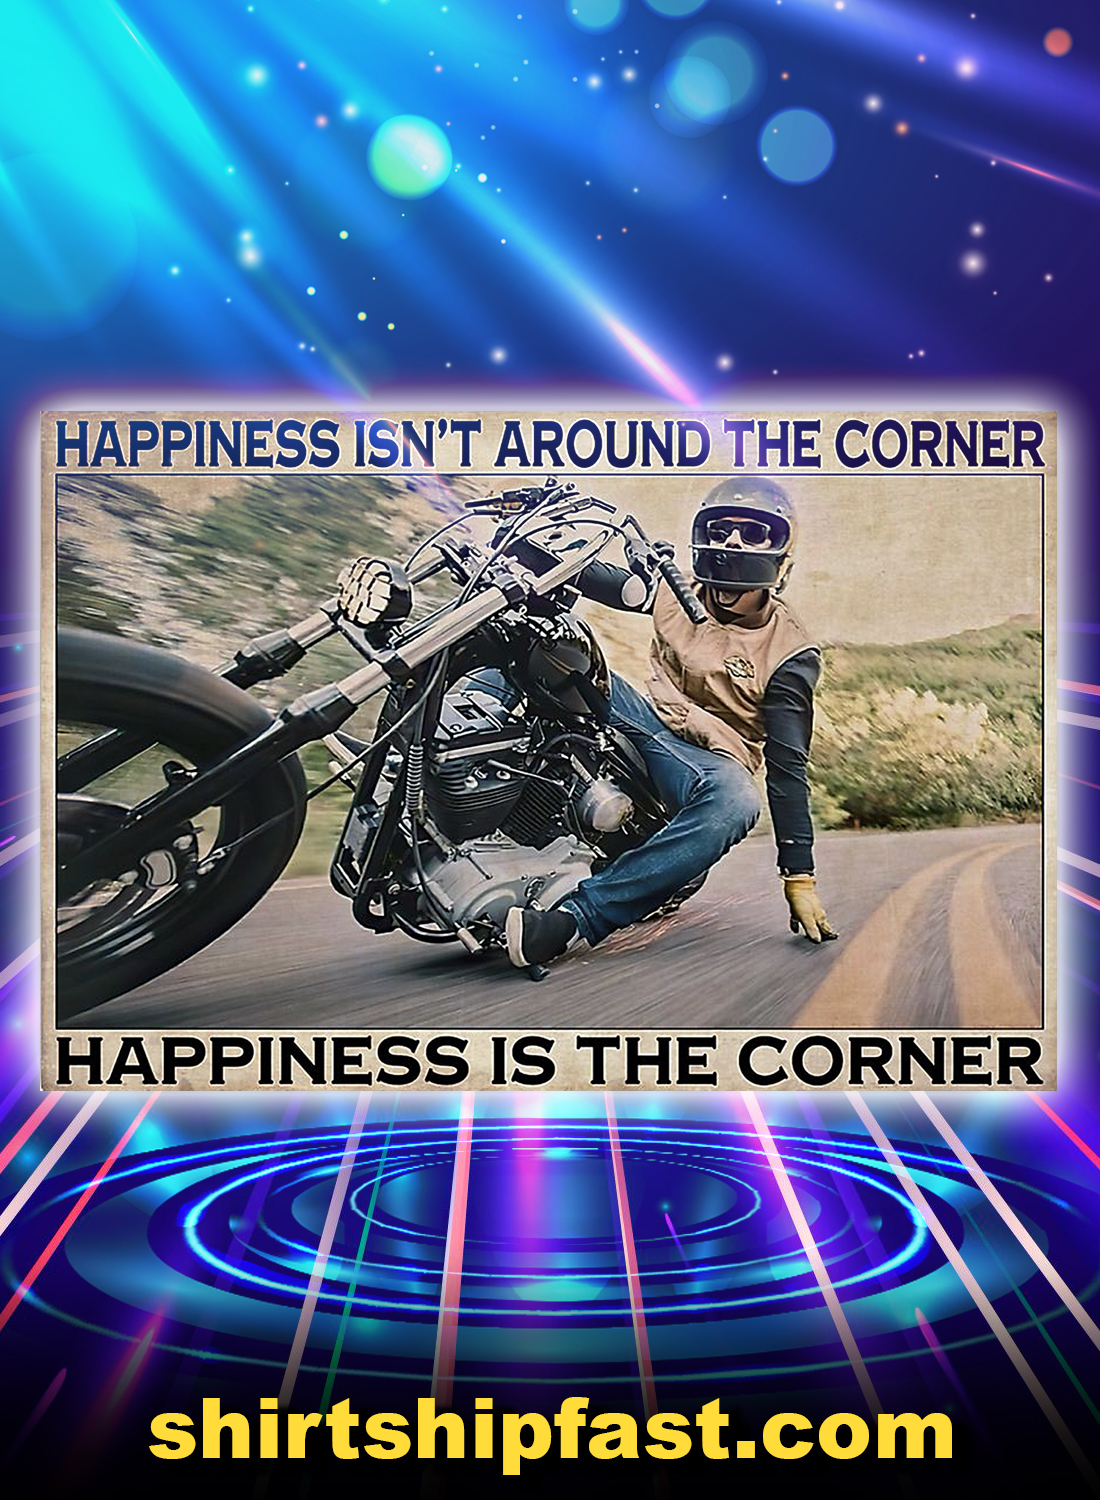 Corner Motorcycle happiness isn't around the corner poster - A4